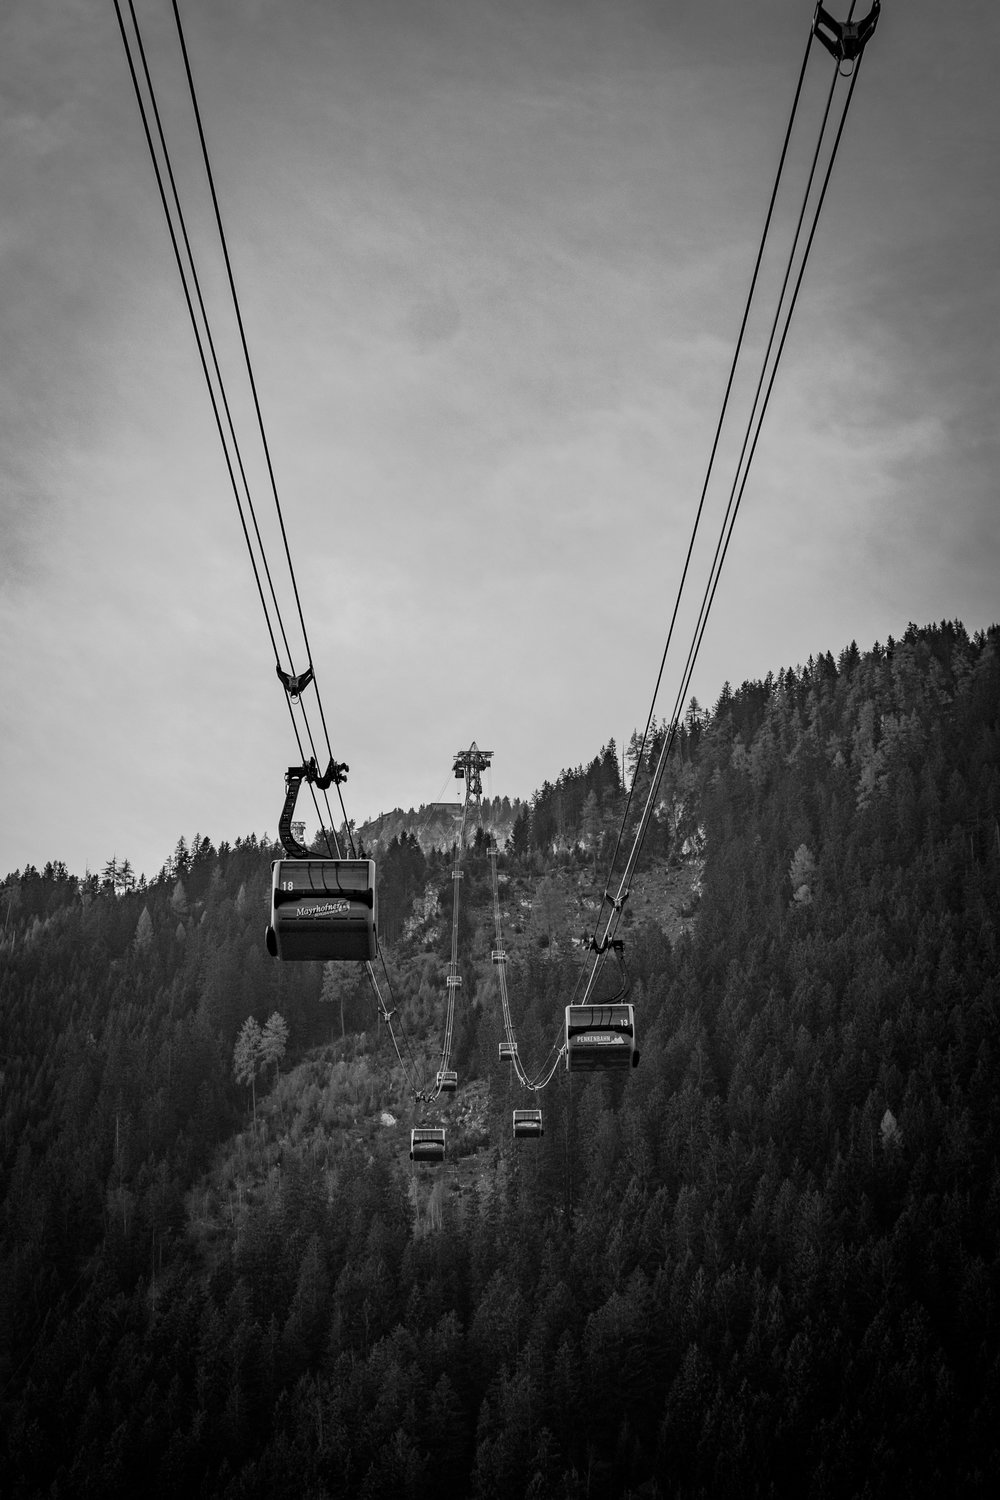 The Penkenbahn lift in Mayrhofen Fujifilm X-E1 with Olympus 50mm f1.8 shot at 1/500 sec f5.6ISO 200